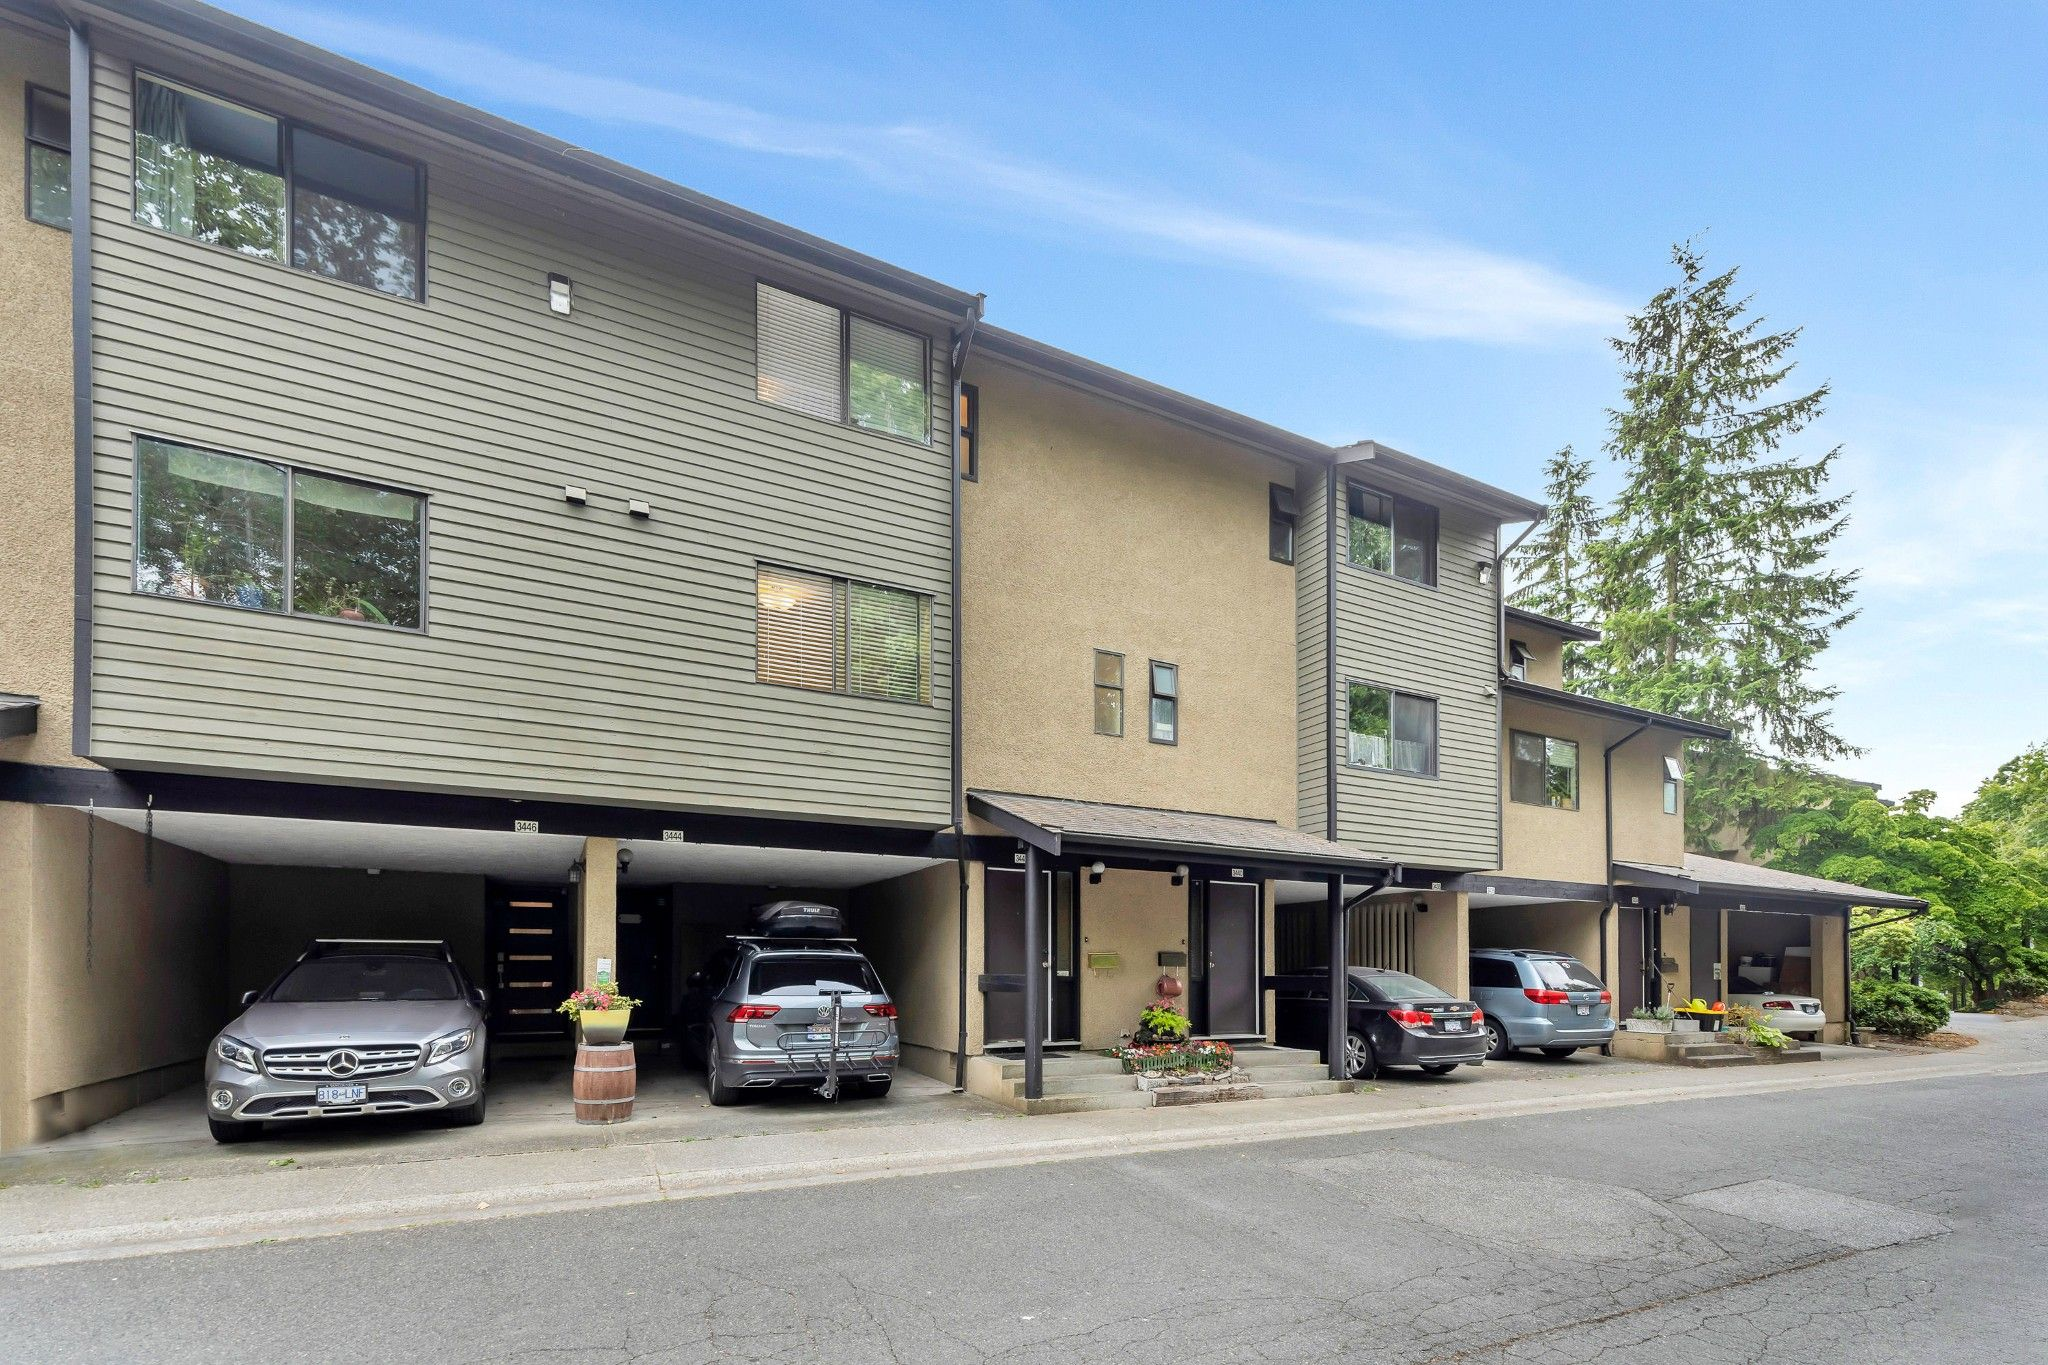 Main Photo: 3442 Nairn Avenue in Vancouver East: Champlain Heights Townhouse for sale : MLS®# R2620064